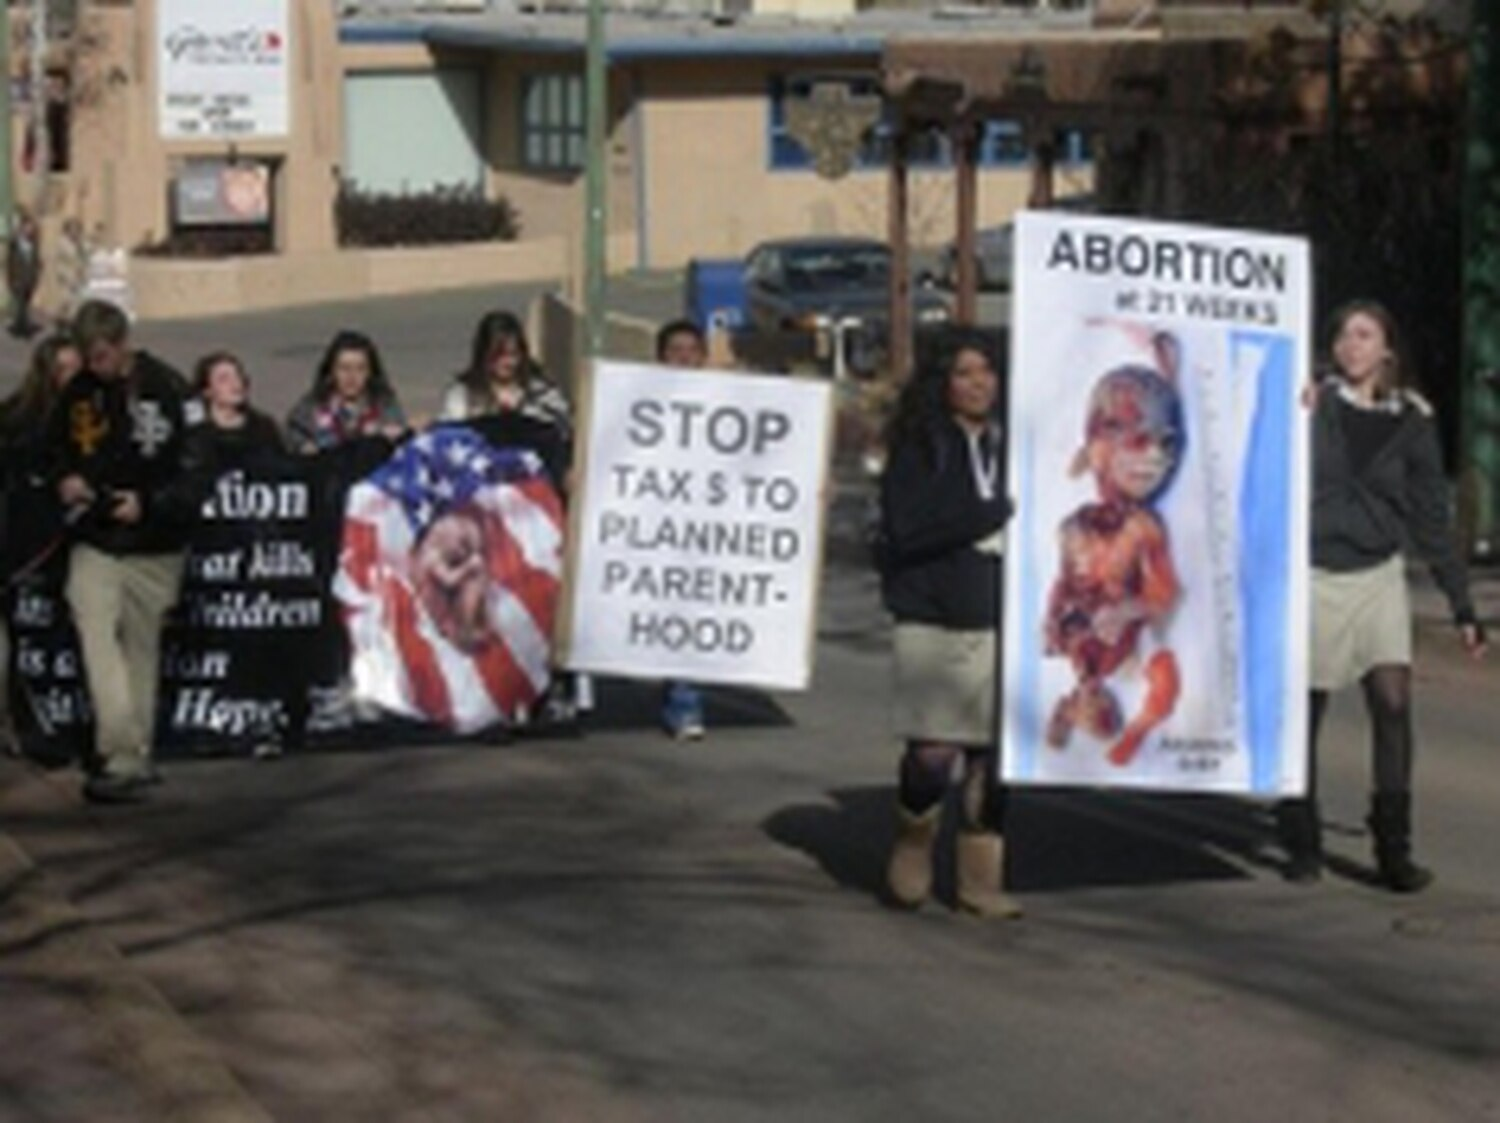 Protests such as this one, held earlier this year in Santa Fe, have helped define an anti-abortion movement that has gained political traction in recent years.